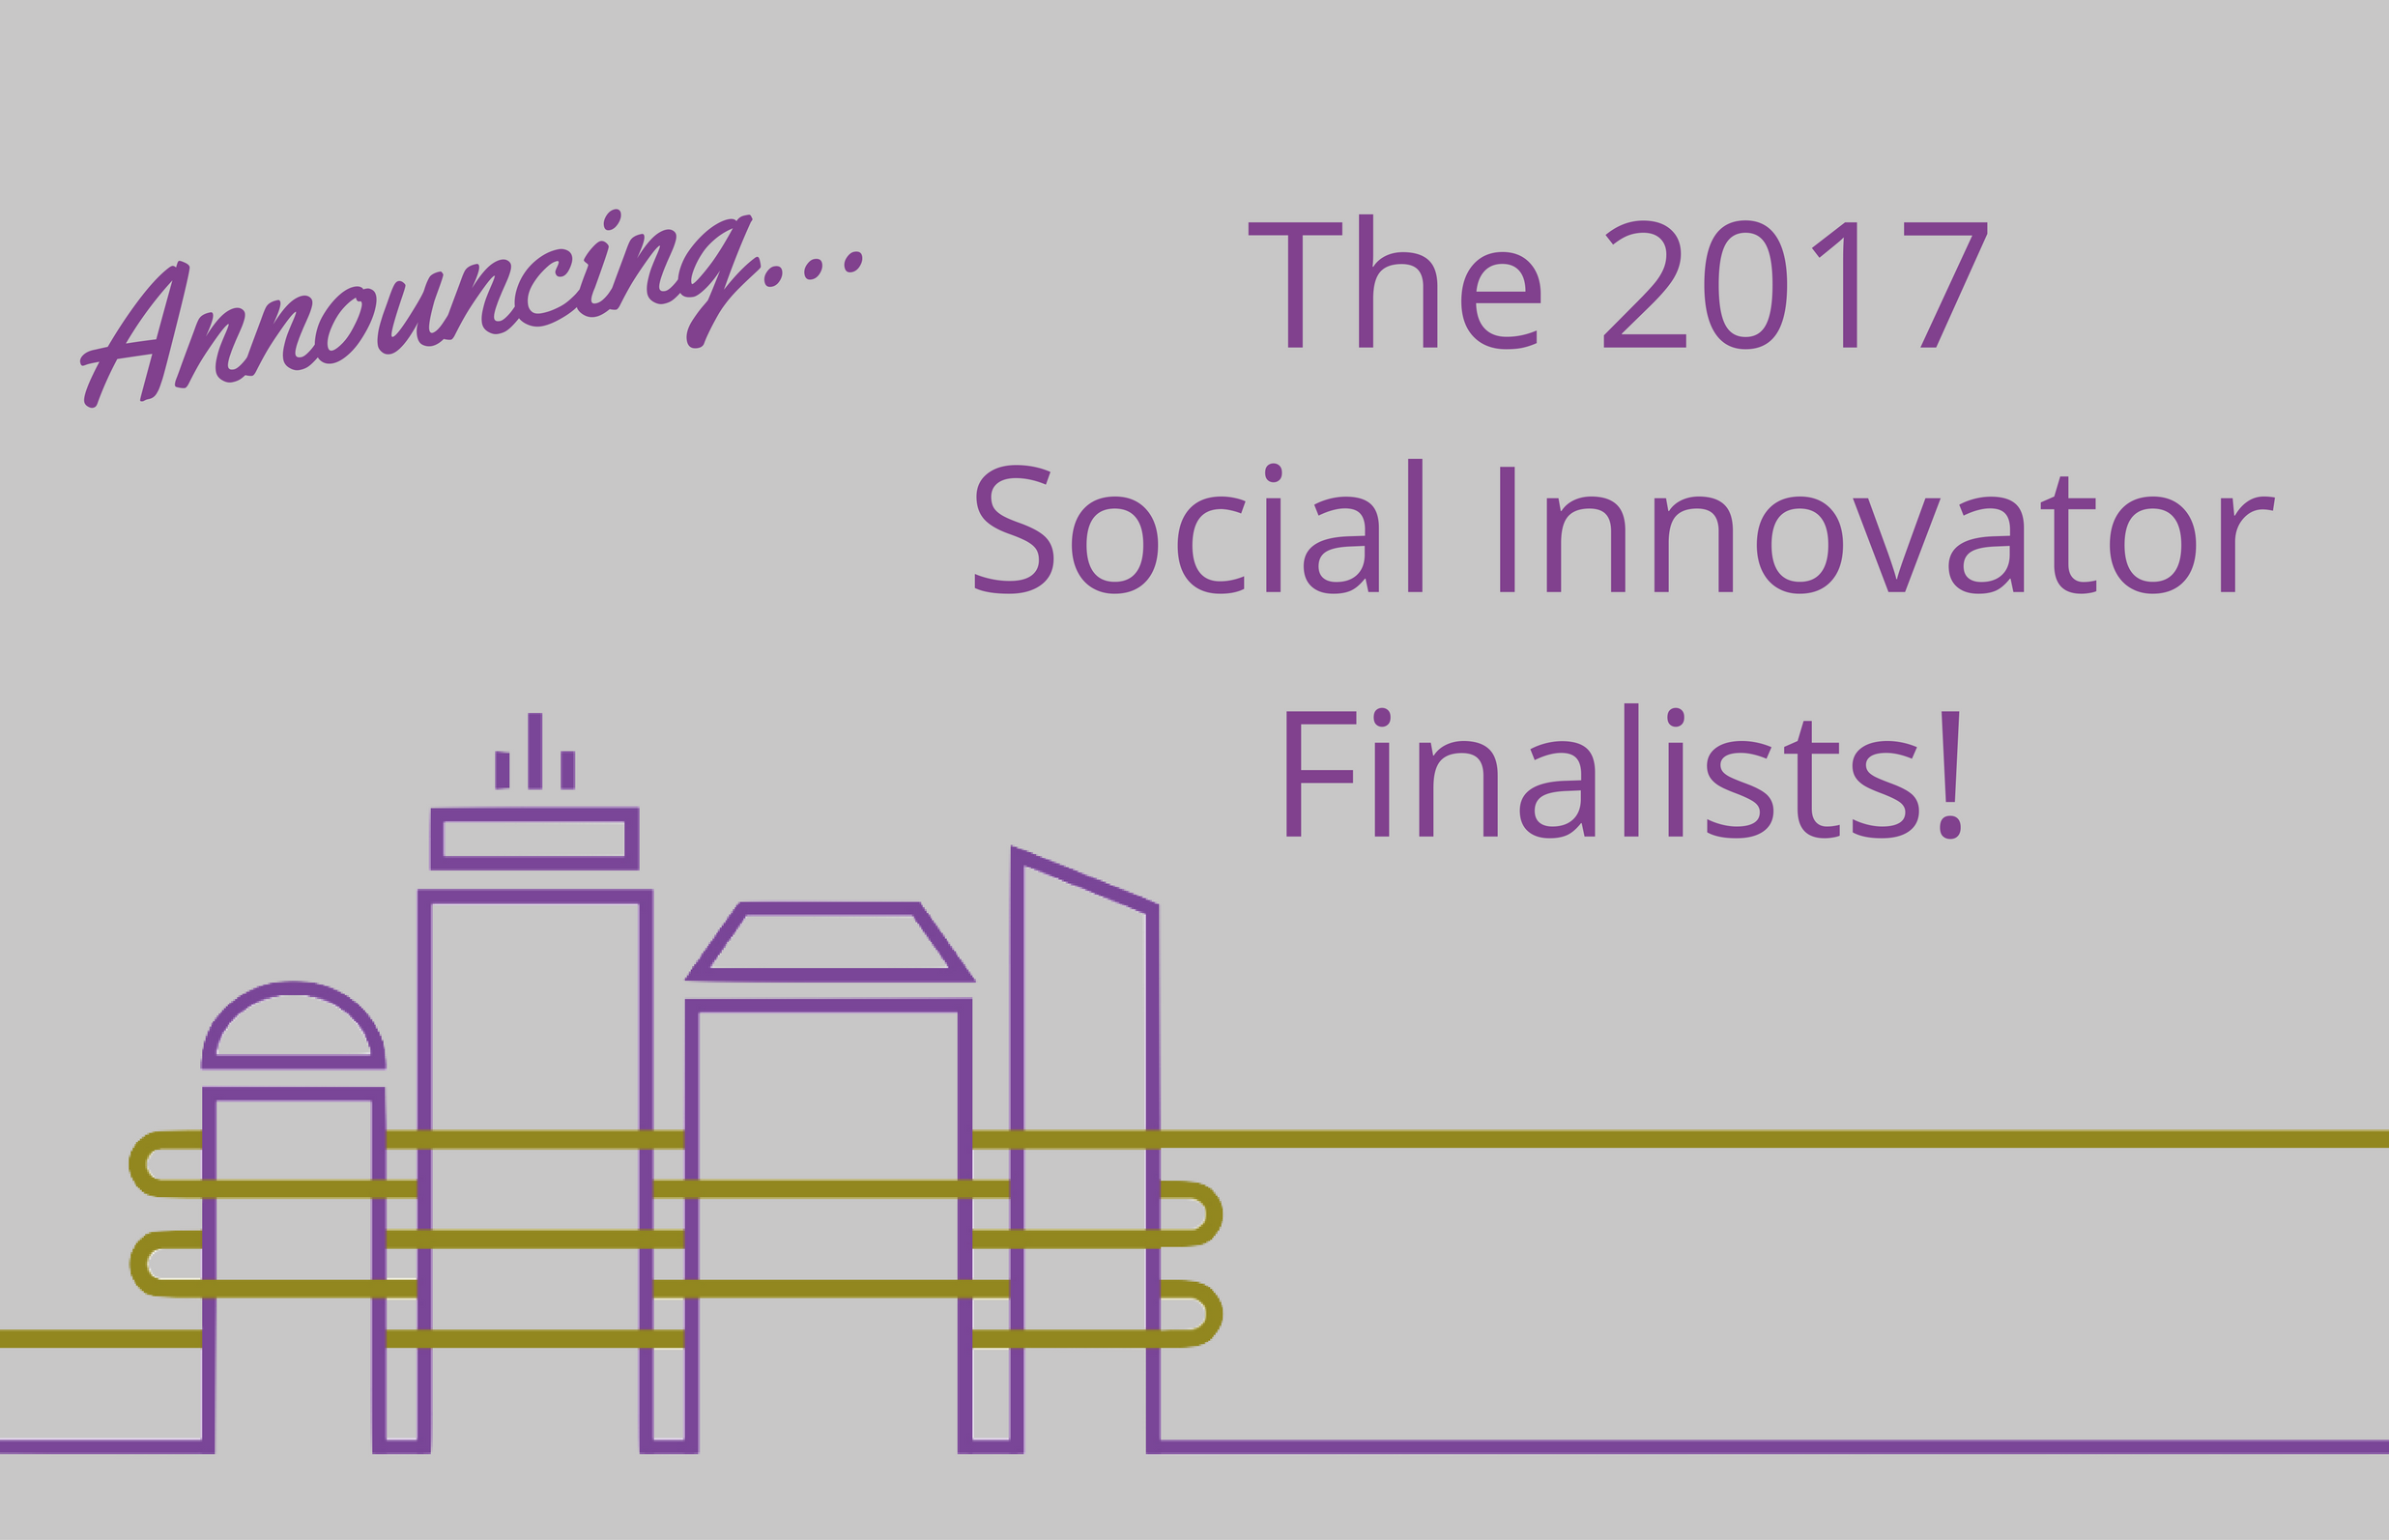 Announcing the 2017 Social Innovator Finalists!